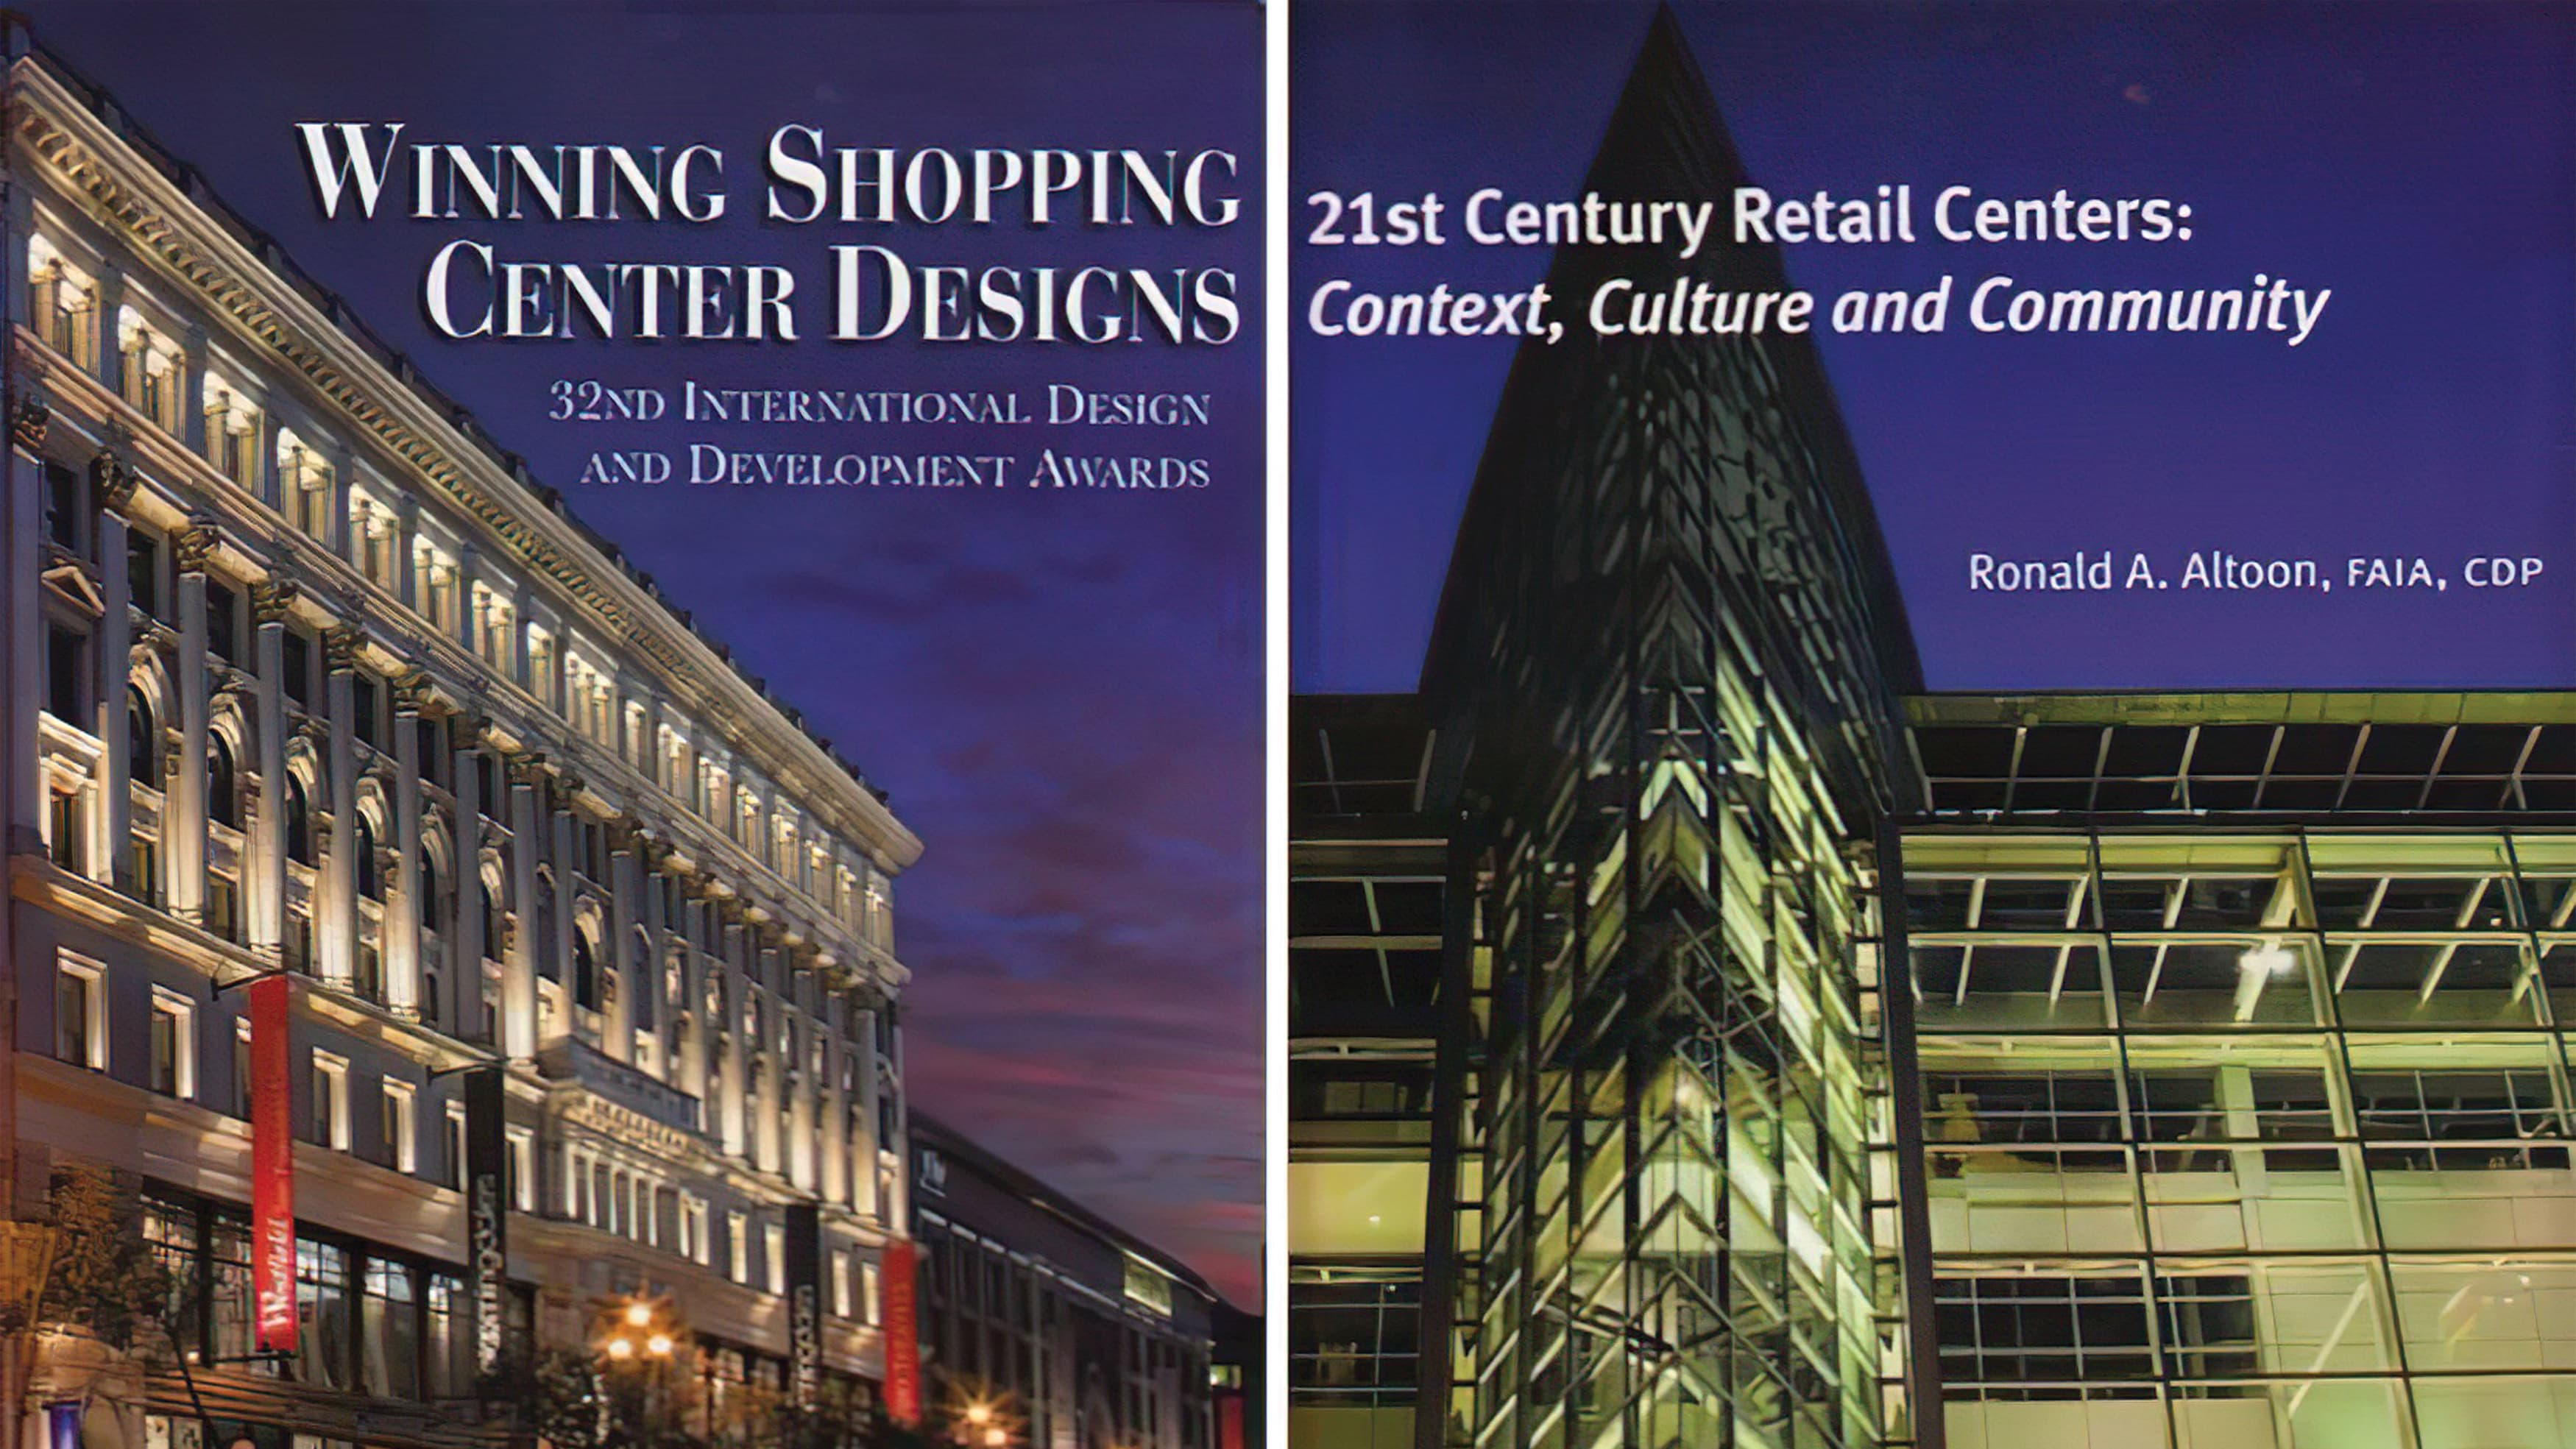 RSM Design was featured in 21st Century Retail Centers: Context, Culture and Community by Ron A. Altoon